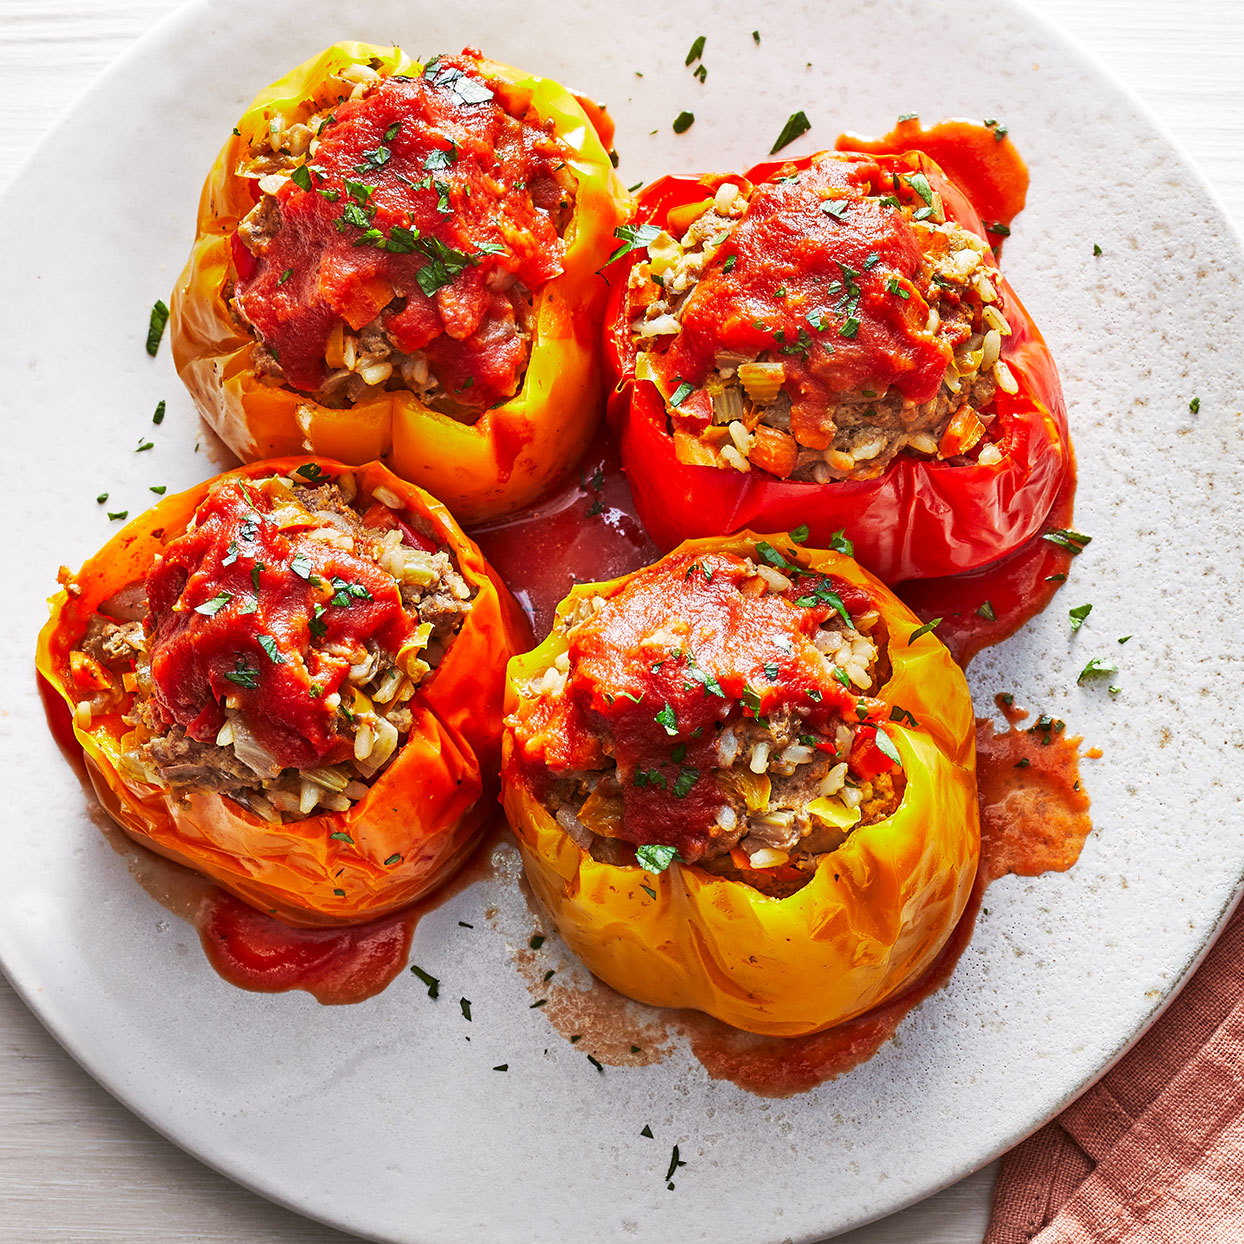 Instant-Pot Stuffed Peppers